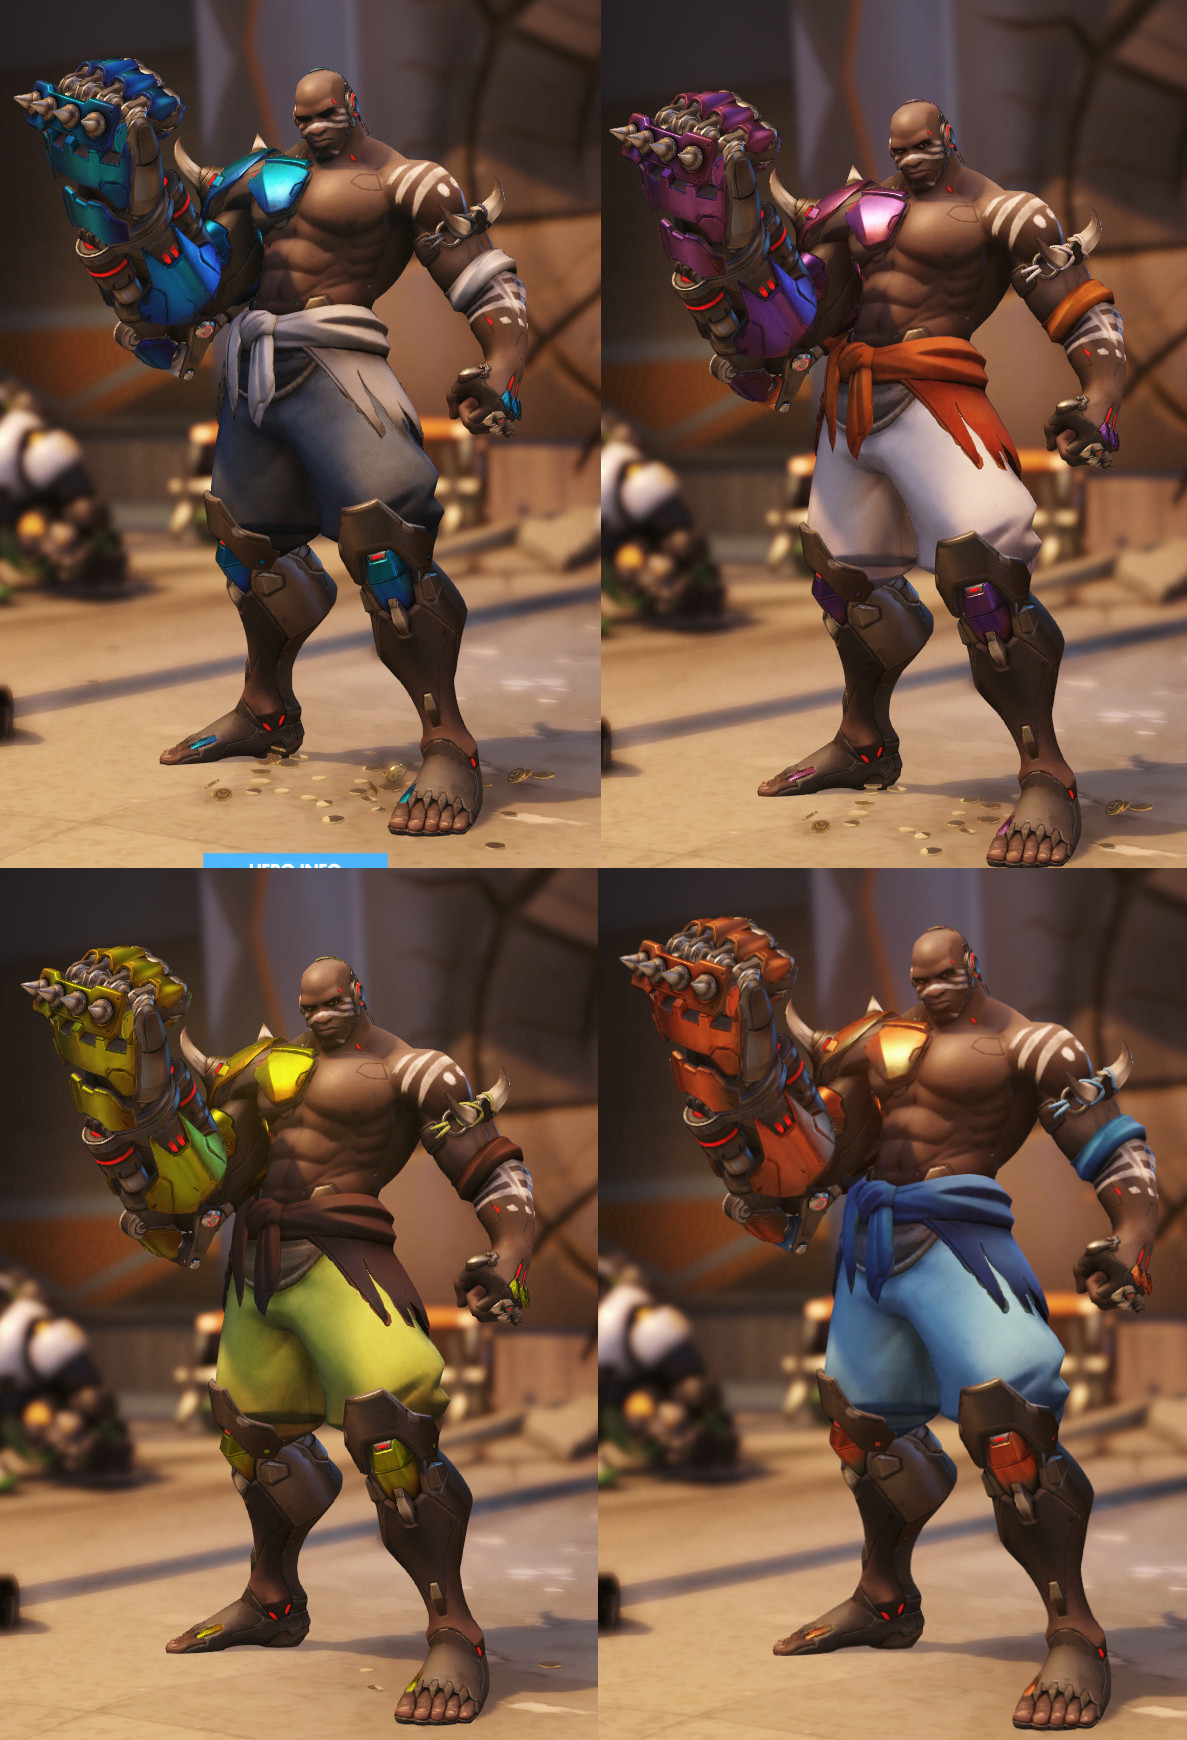 Doomfist's basic recolors also polish up his fist.